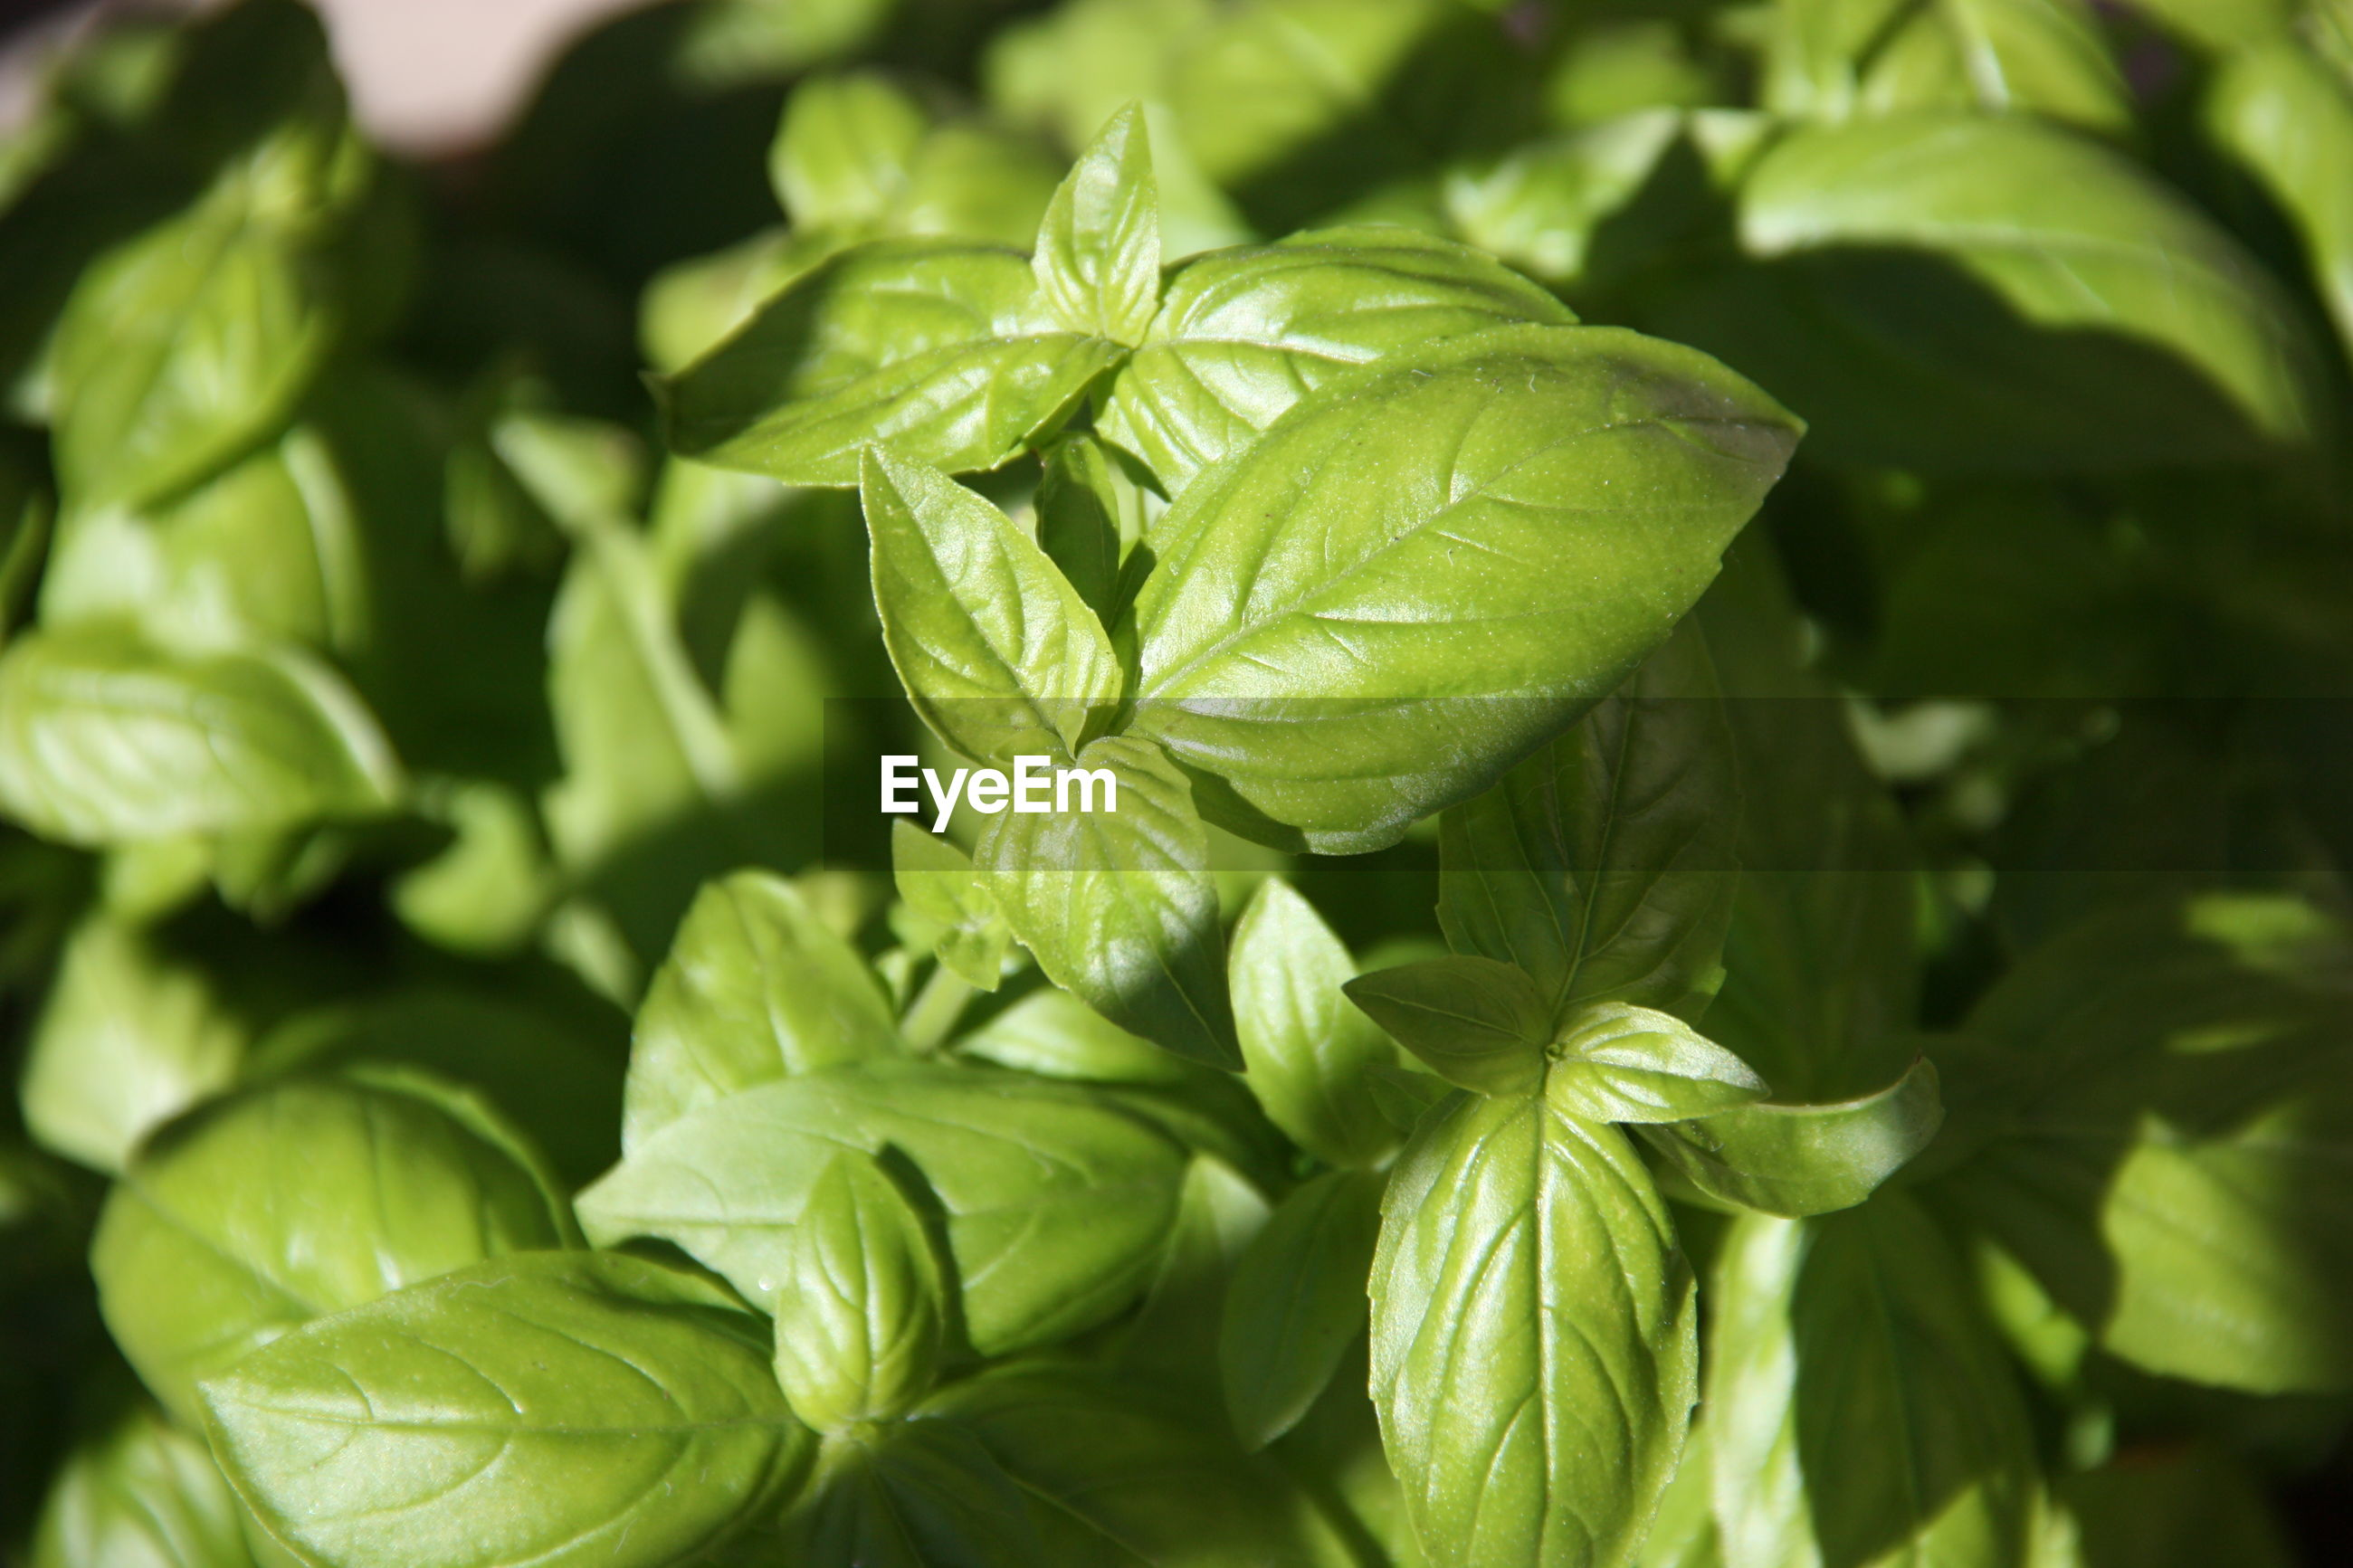 CLOSE-UP OF FRESH GREEN LEAVES IN PLANT